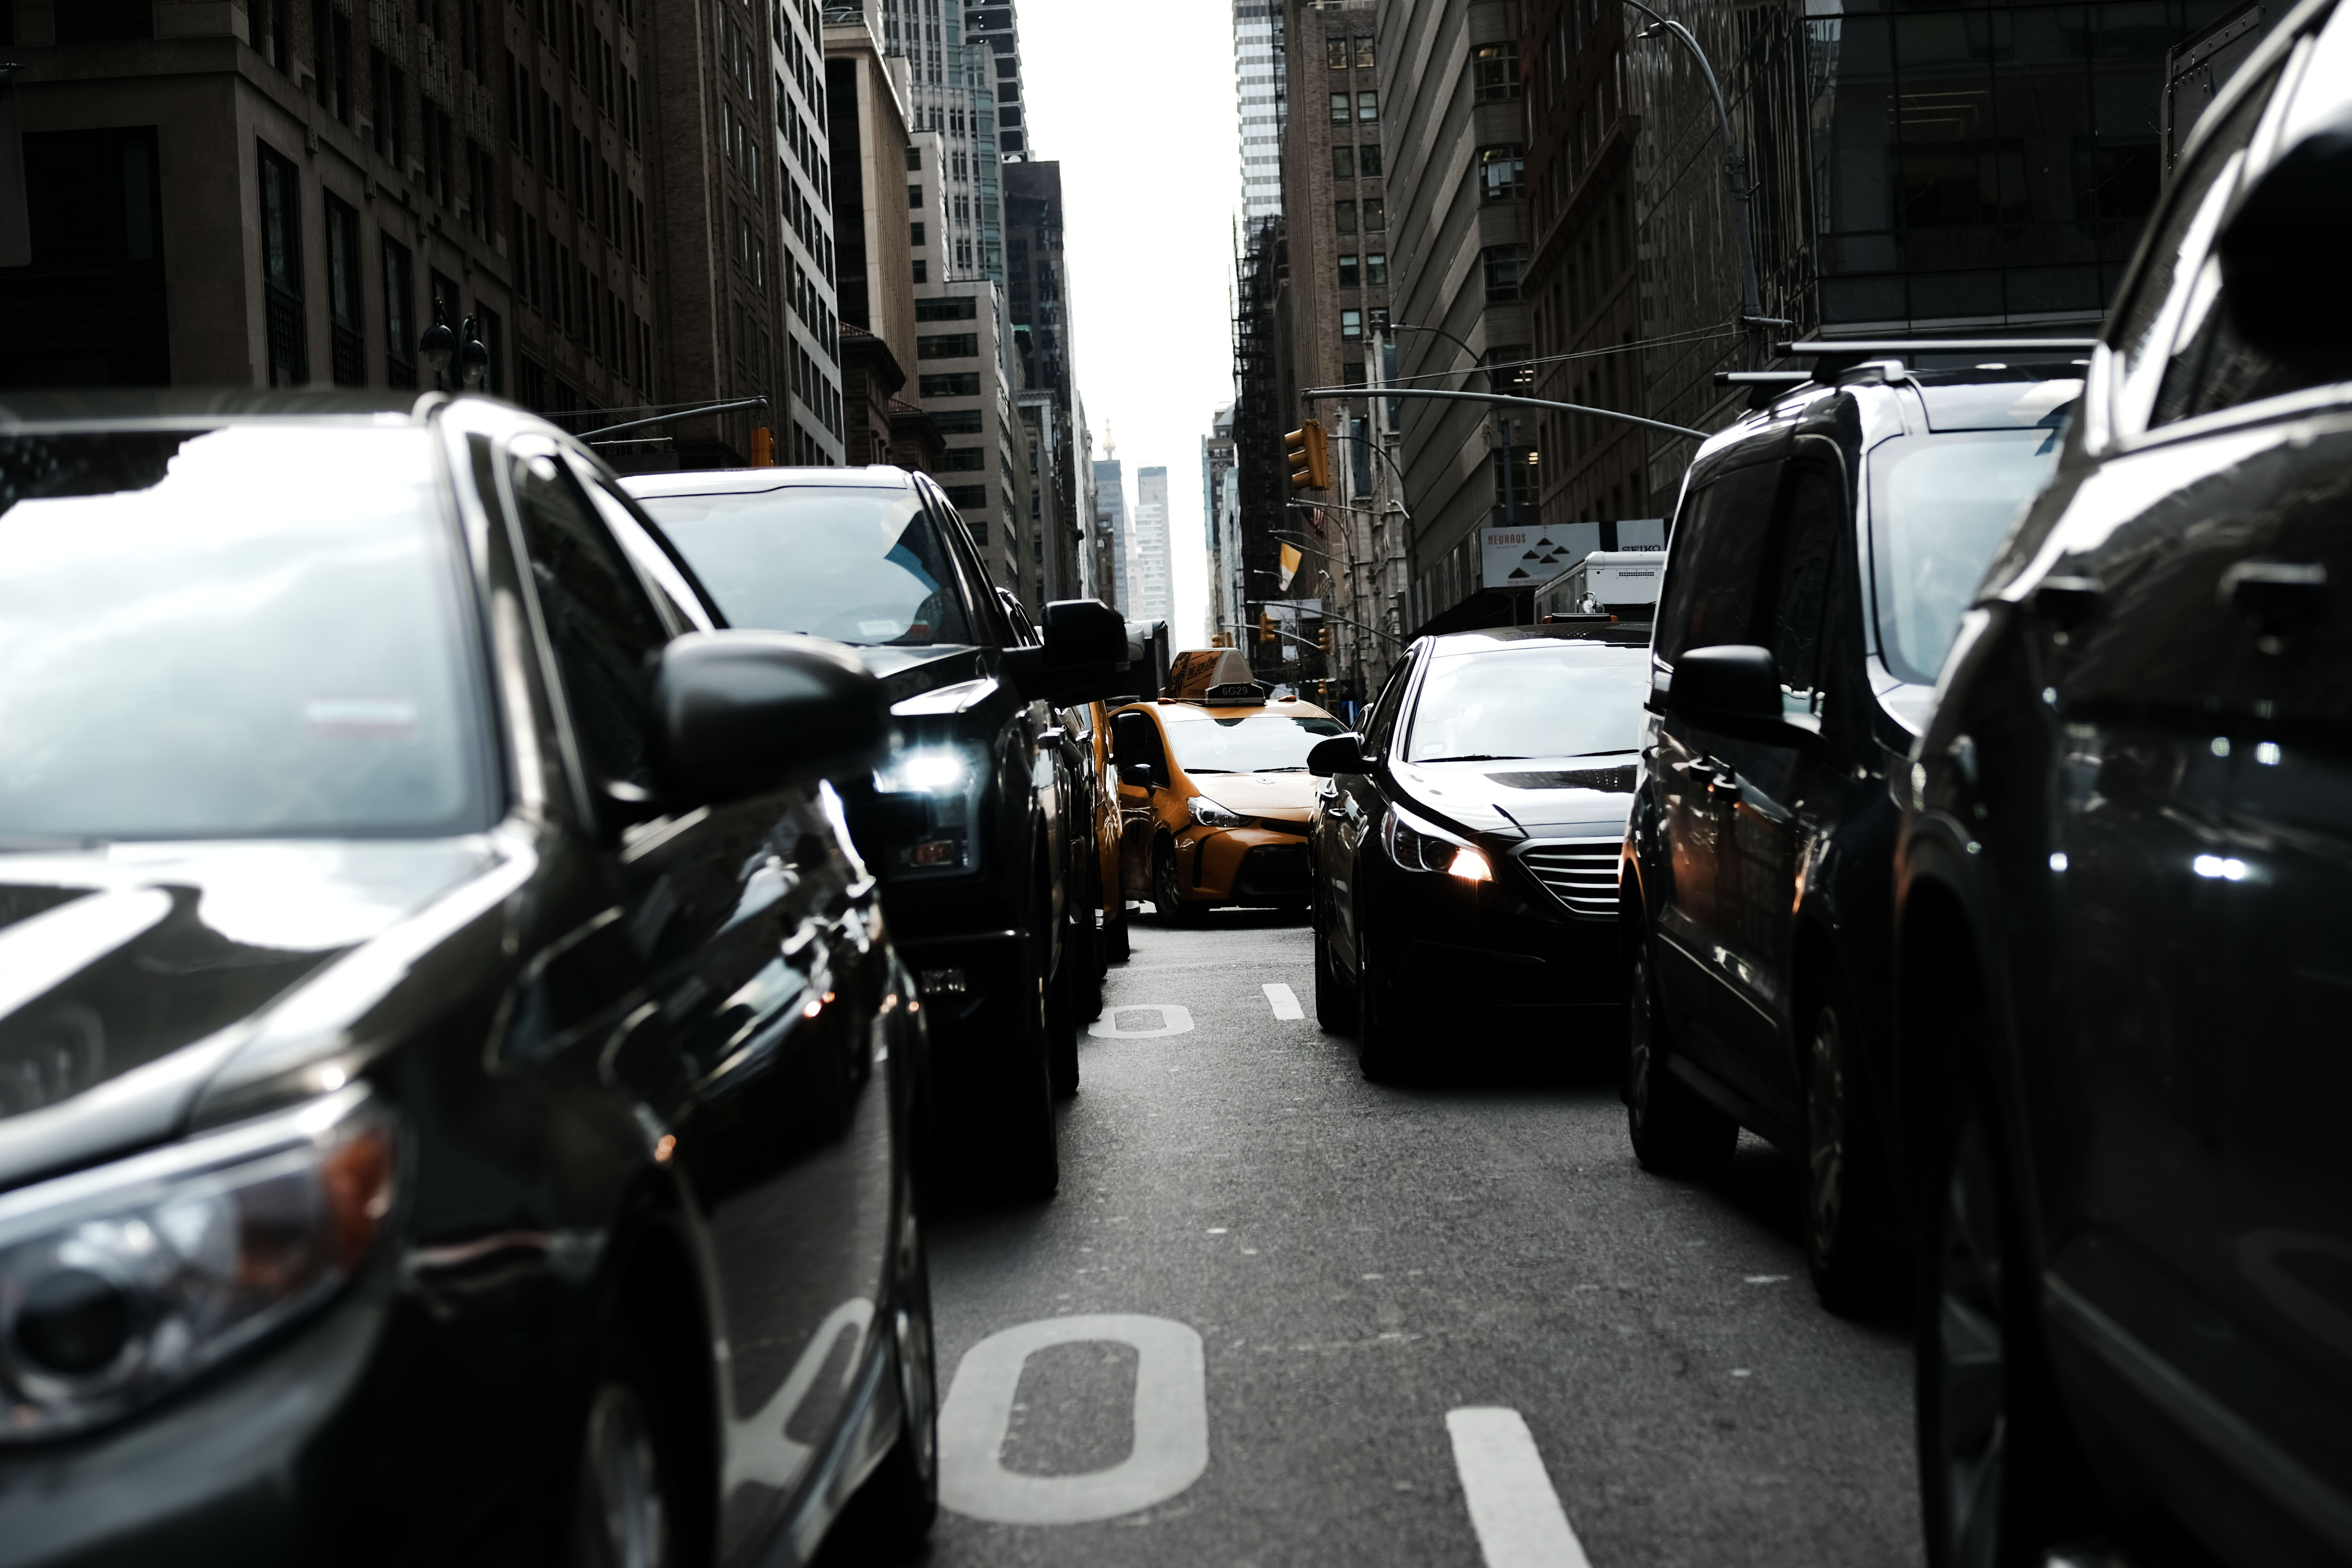 NYC Mayor De Blasio And NY Governor Cuomo Announce Congestion Pricing For Manhattan And Reorganization Of MTA